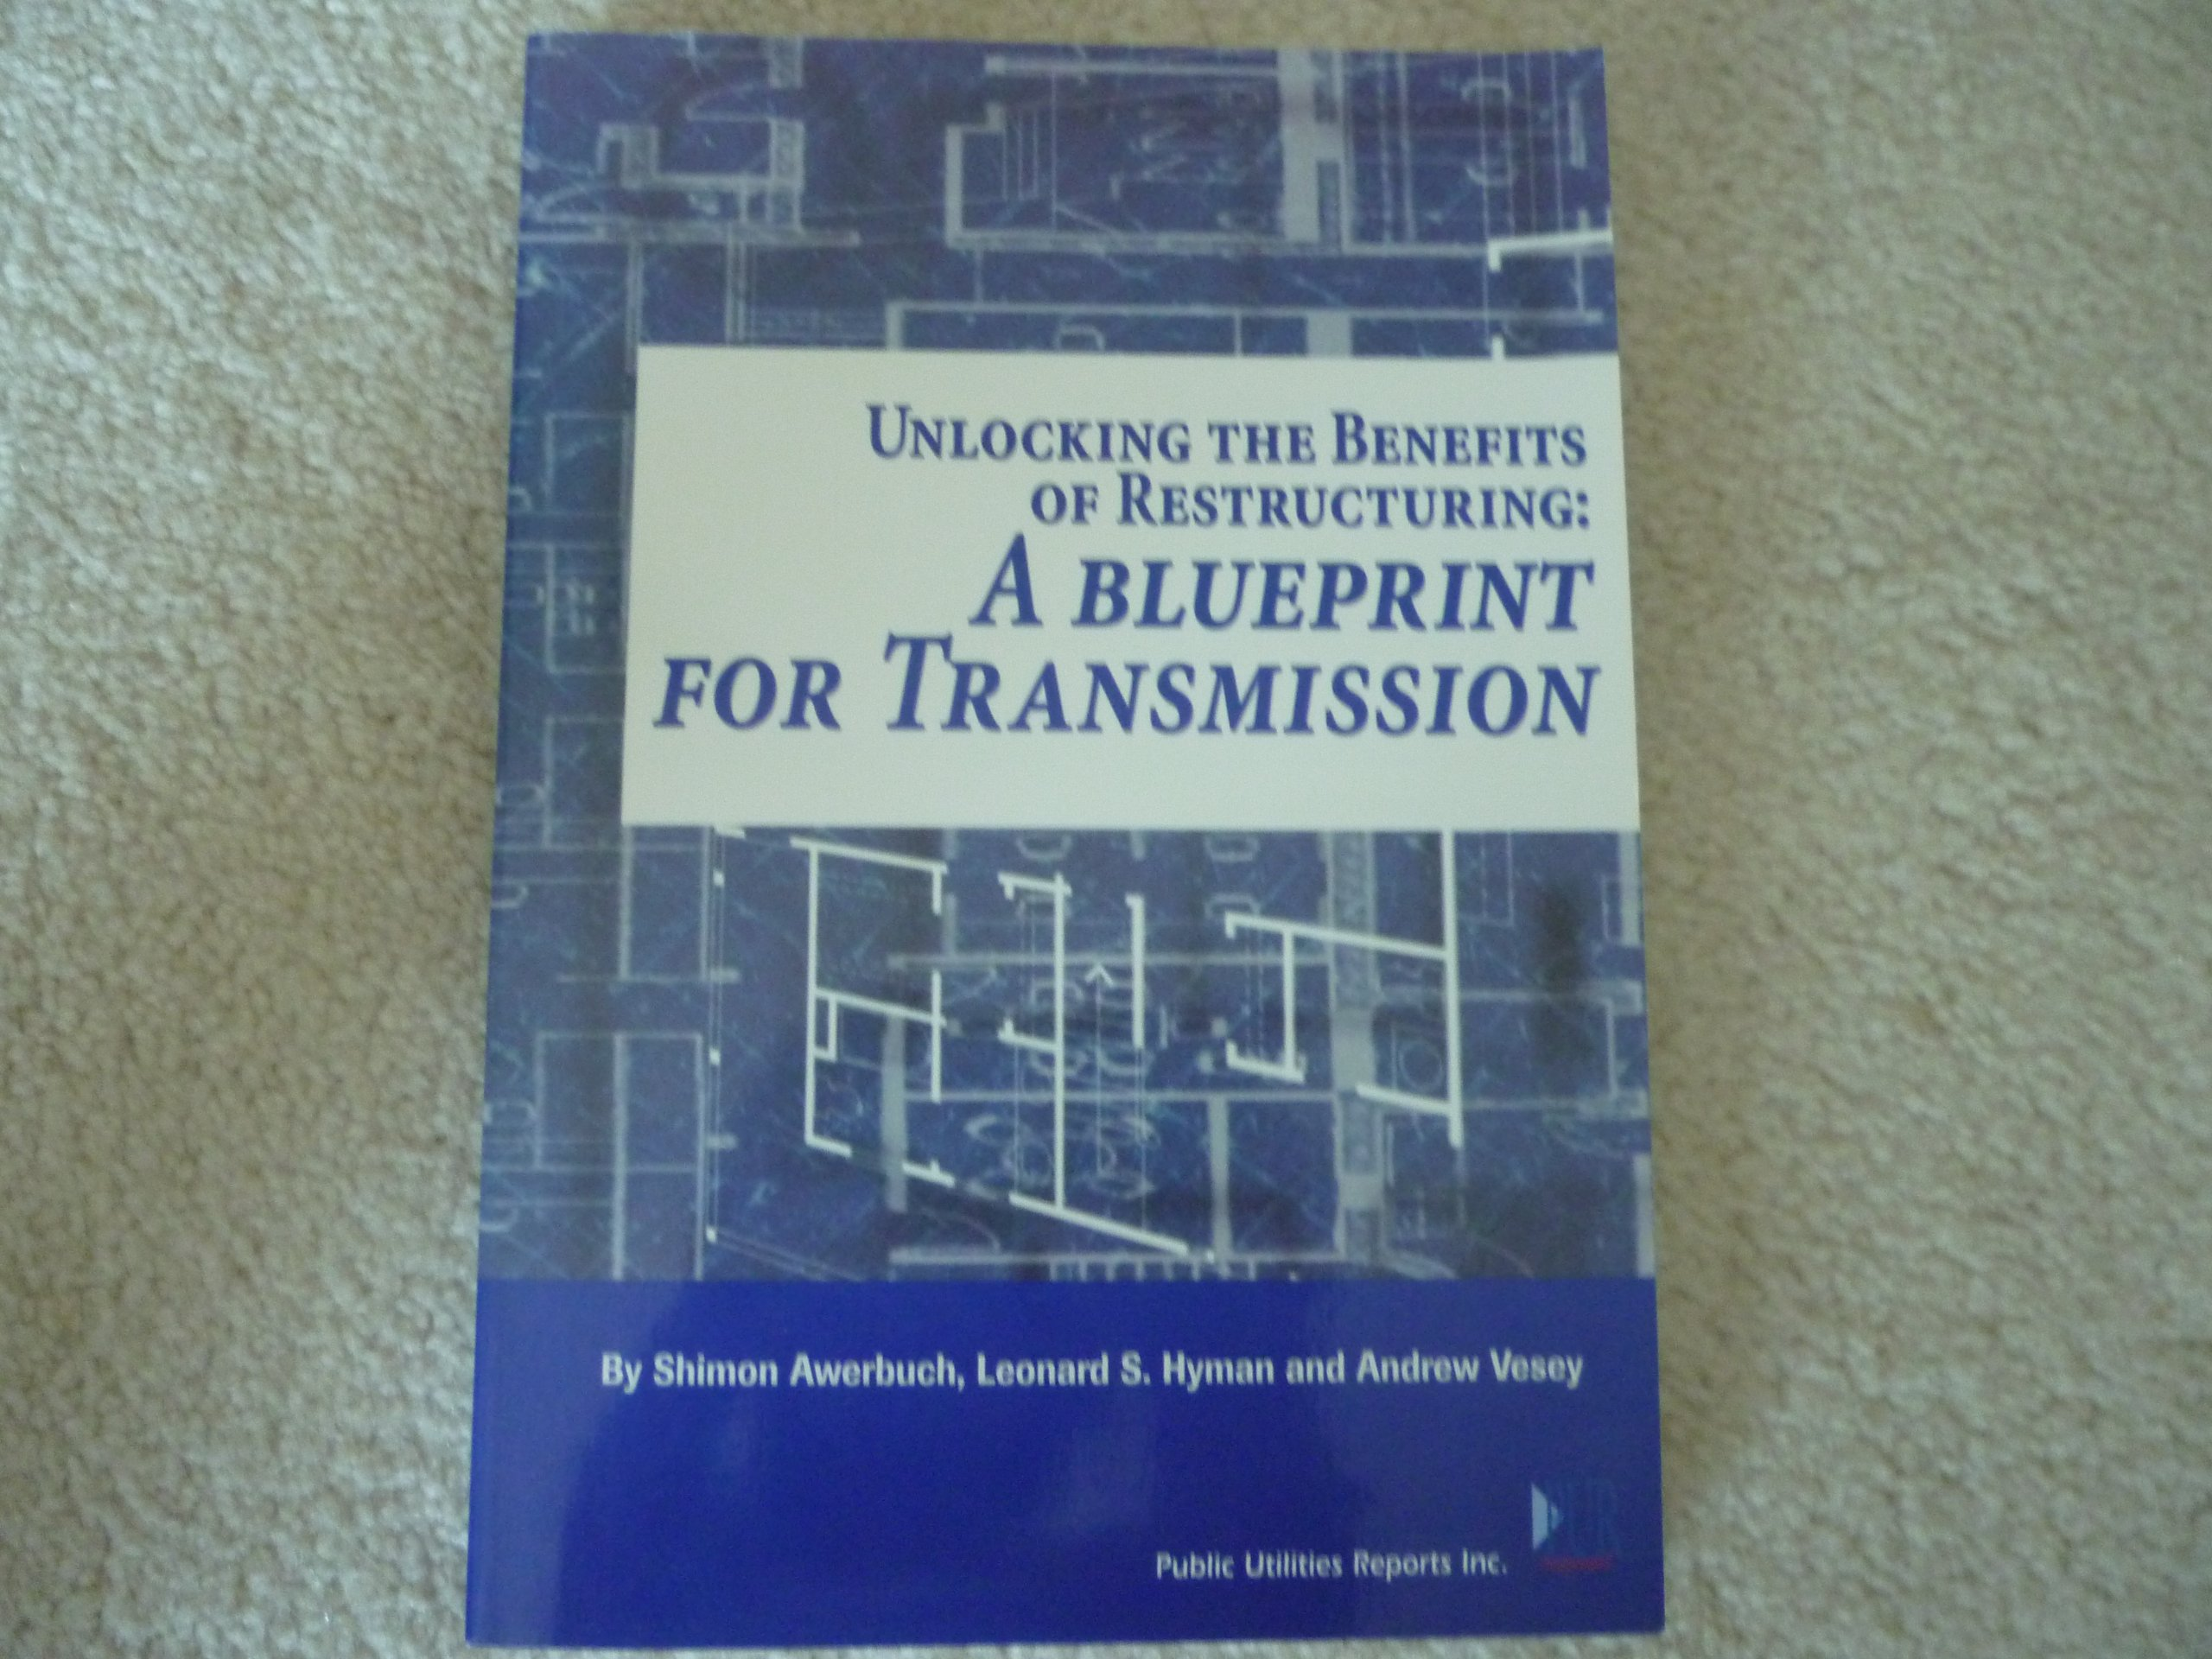 Unlocking the Benefits of Restructuring: A Blueprint for